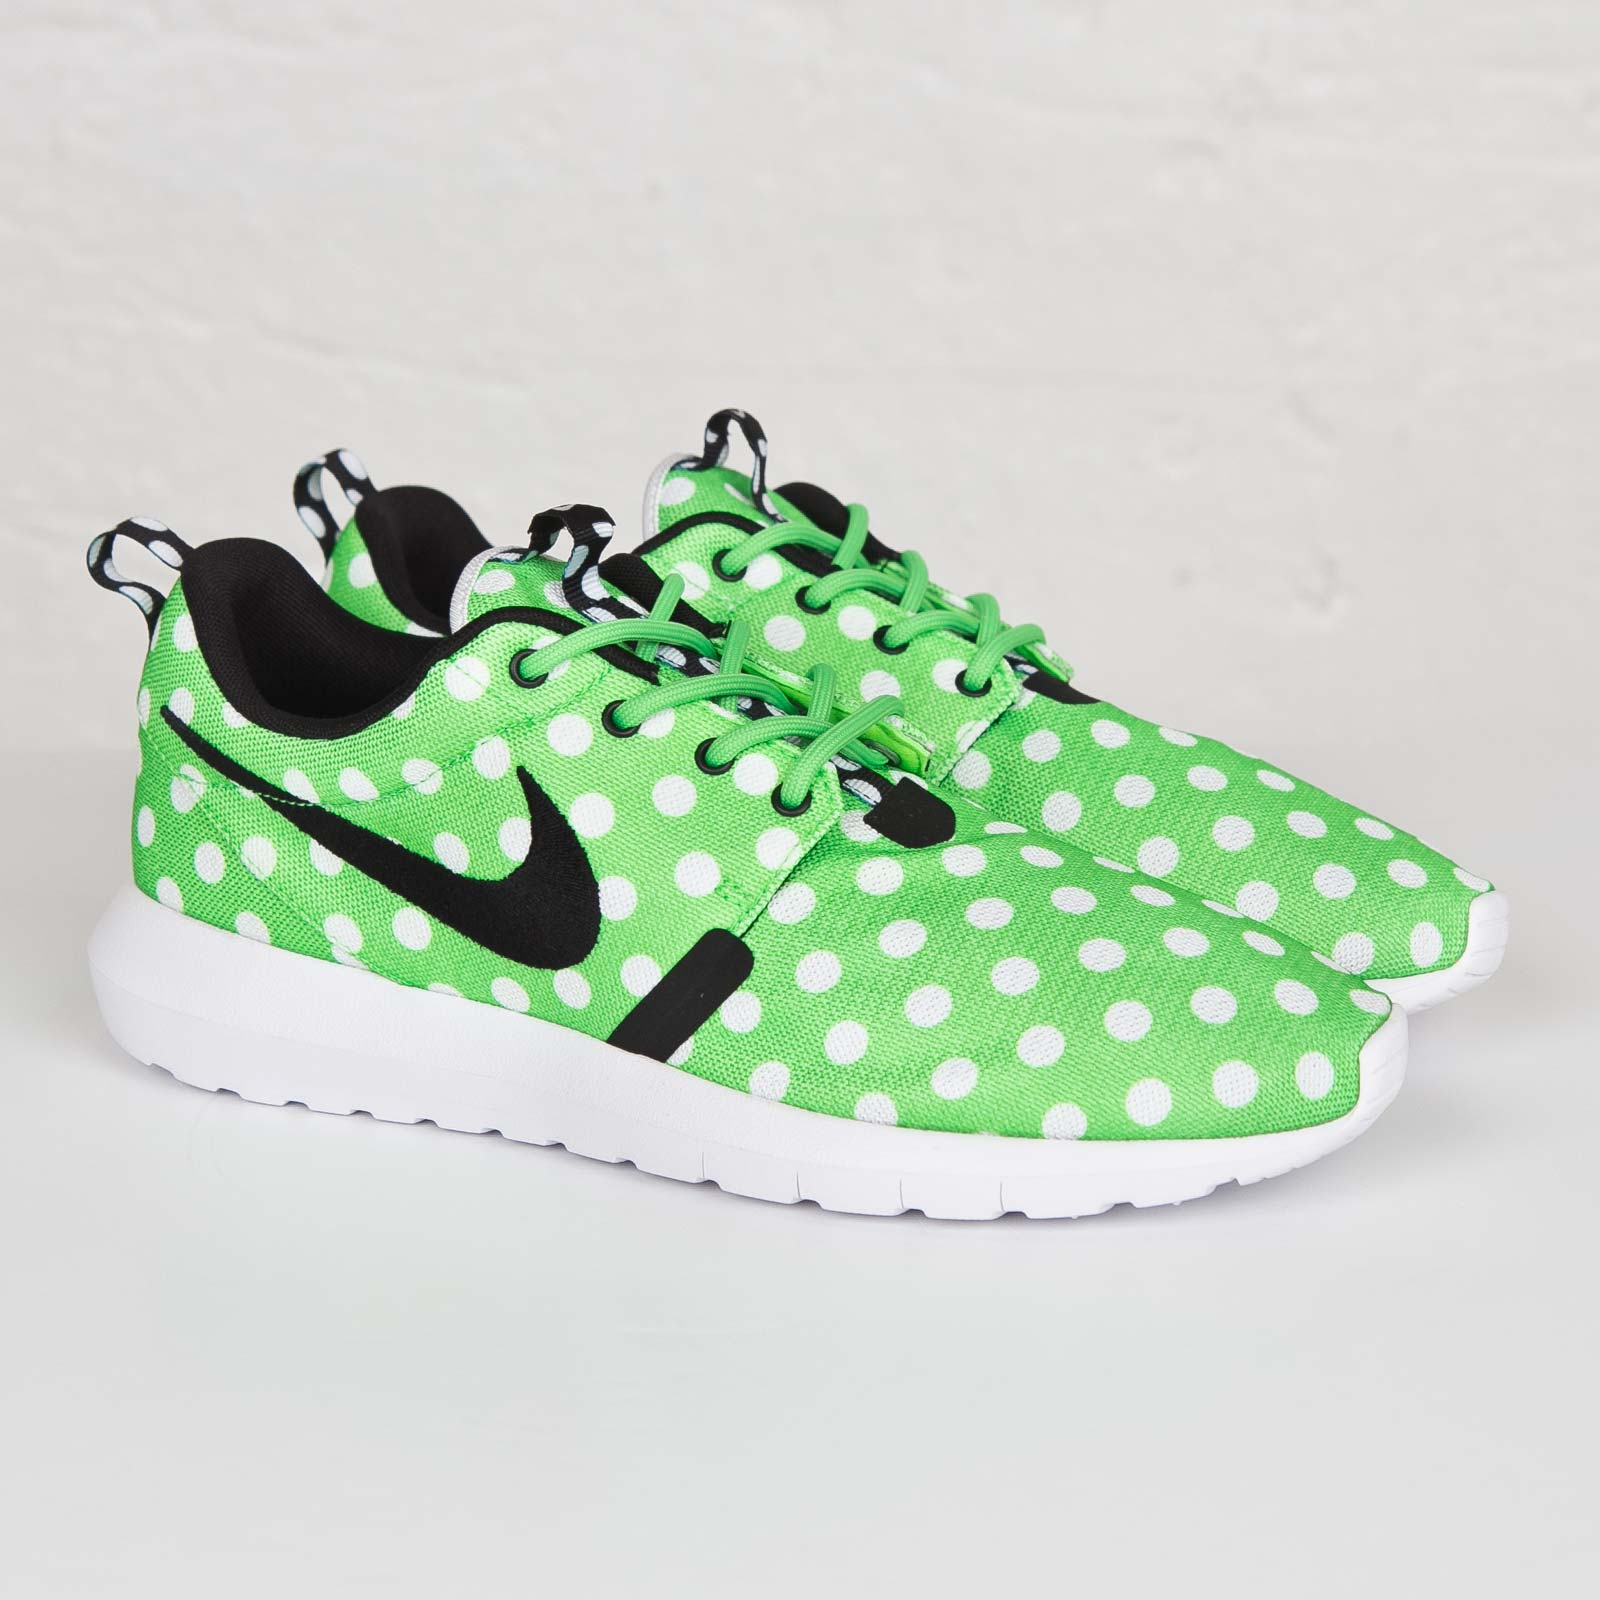 reputable site f3a26 a7a39 Nike Roshe Run NM QS Color  Green Strike Black-White Style  810857-300.  Price   110.00